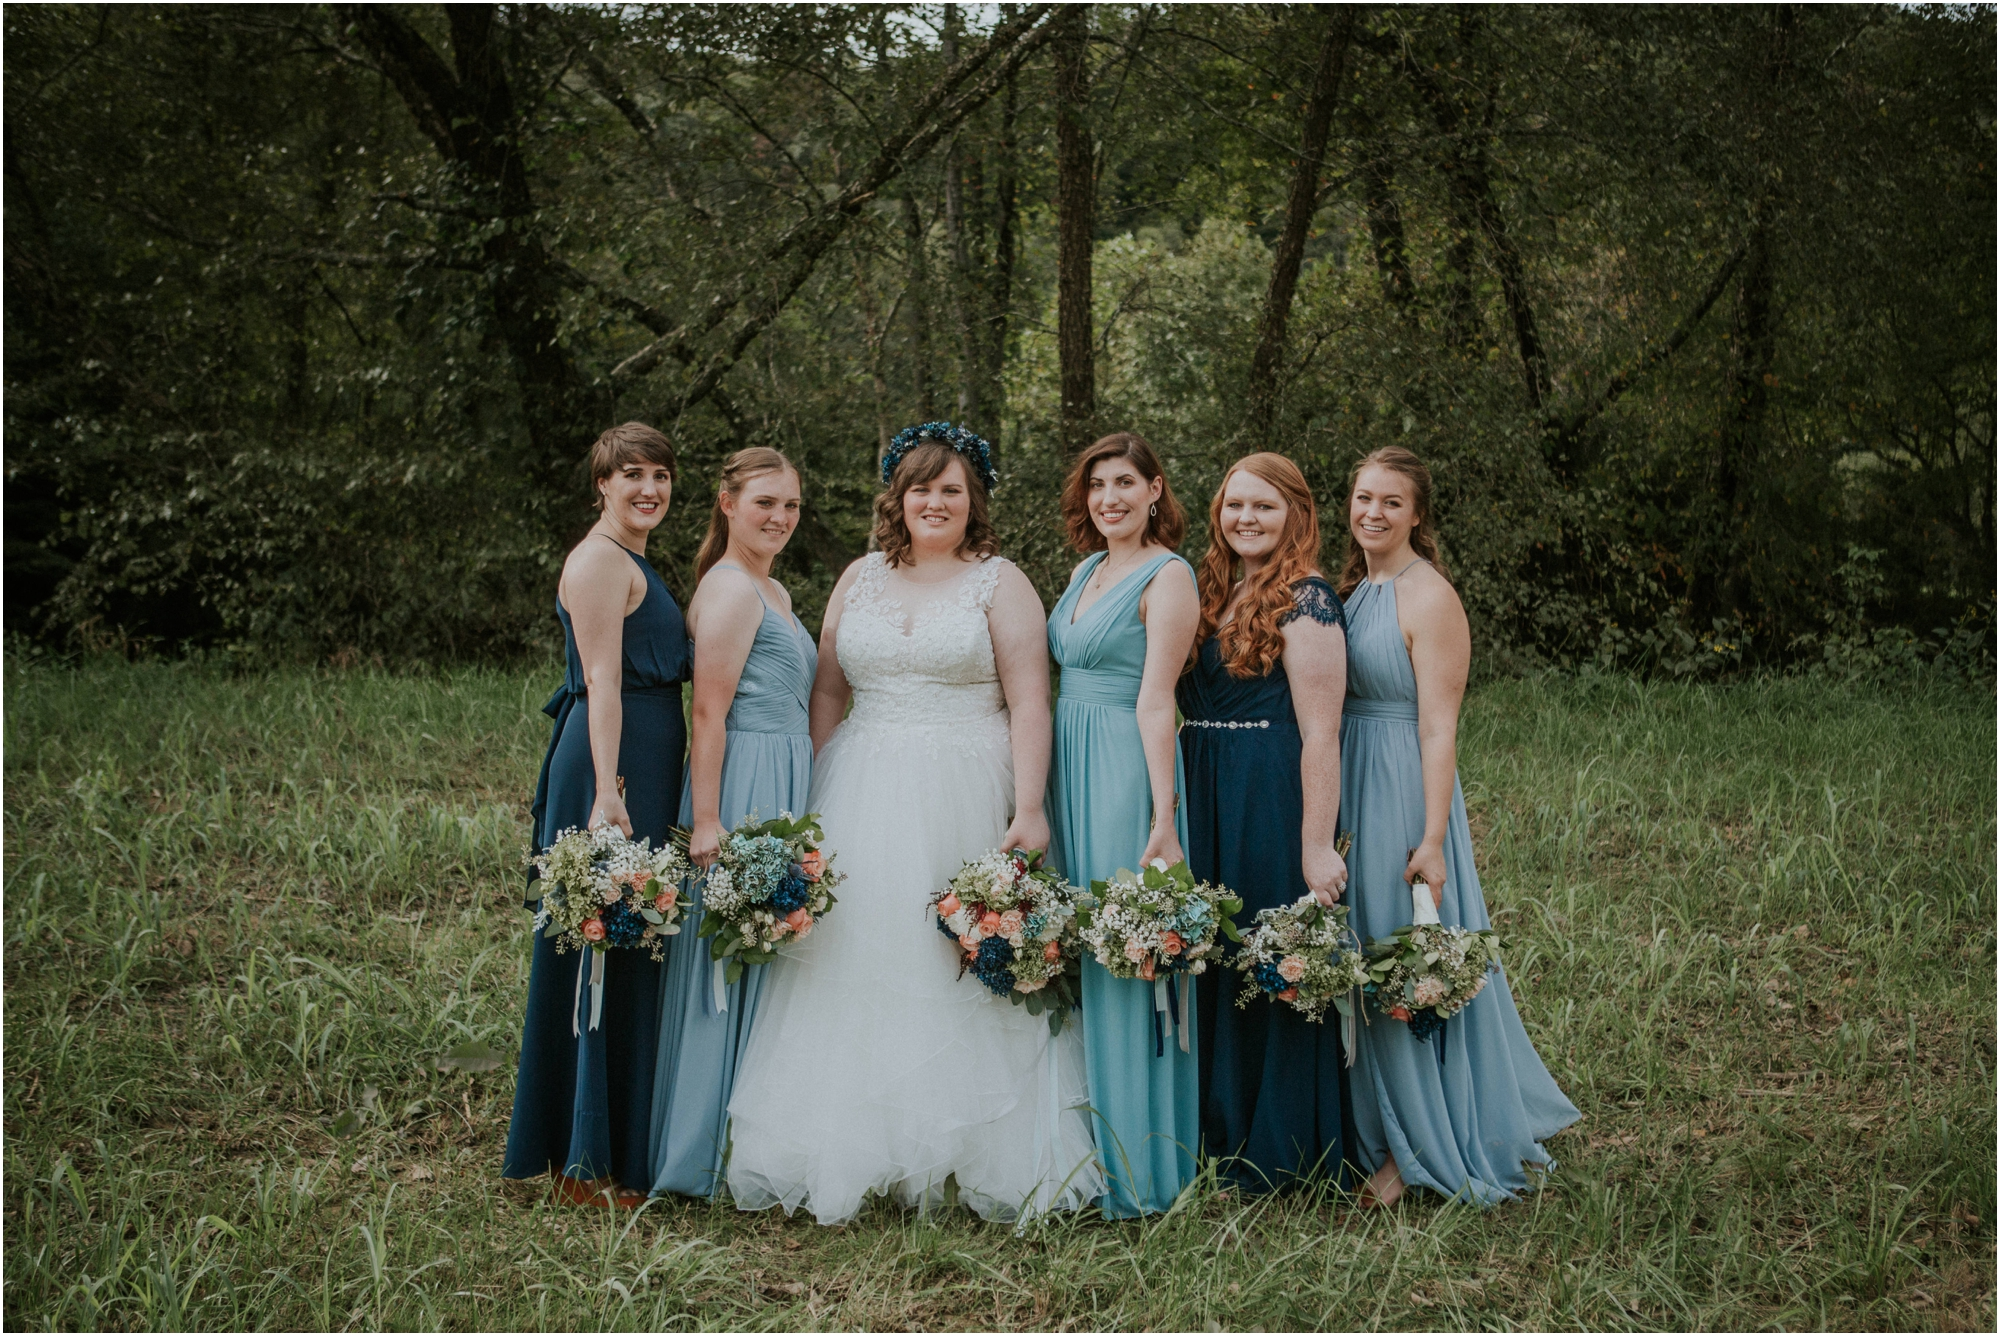 caryville-robbins-middle-tennessee-intimate-cozy-fall-navy-rustic-backyard-wedding_0055.jpg